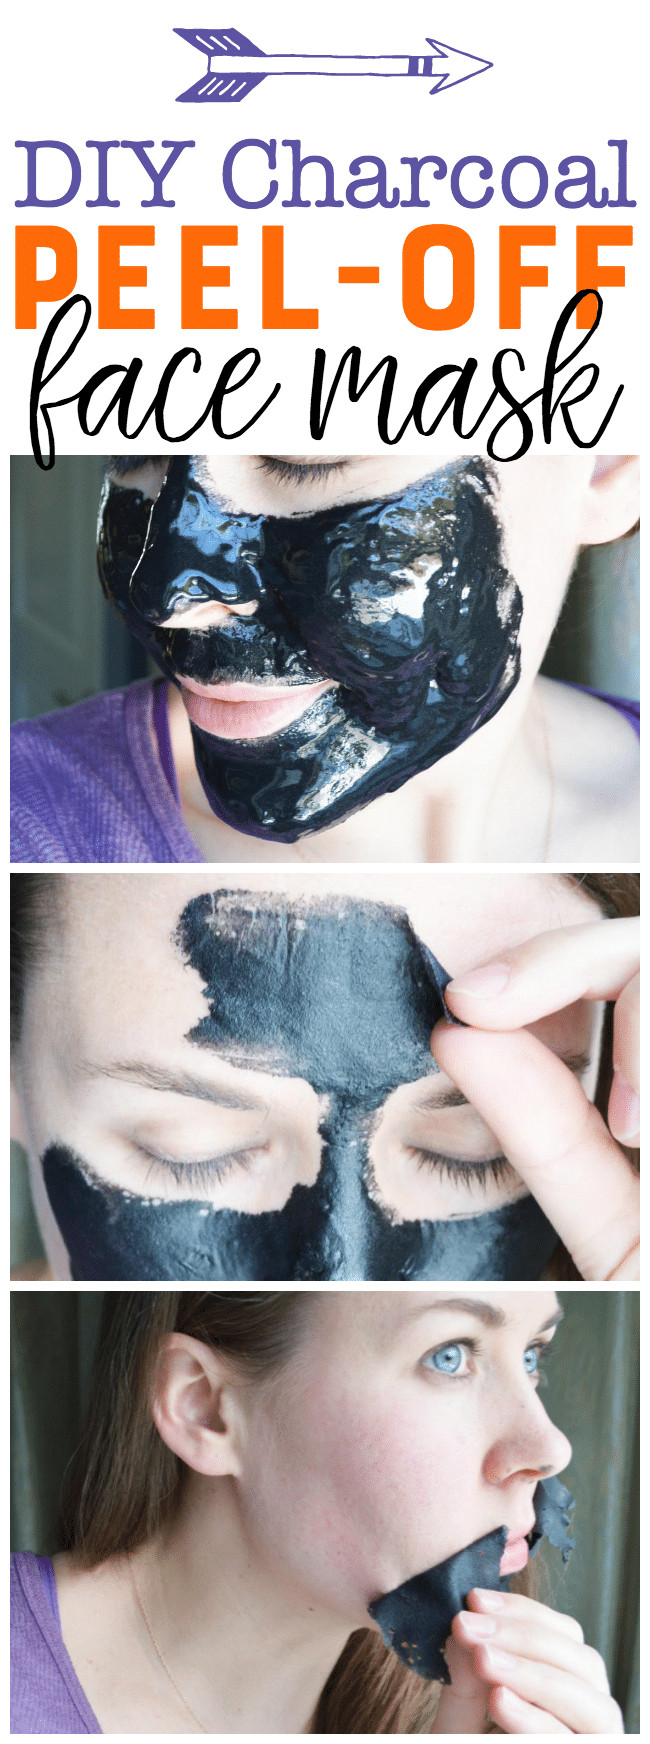 Best ideas about DIY Peel Mask . Save or Pin DIY Charcoal Peel f Mask Easy Blackhead Busting Mask Now.